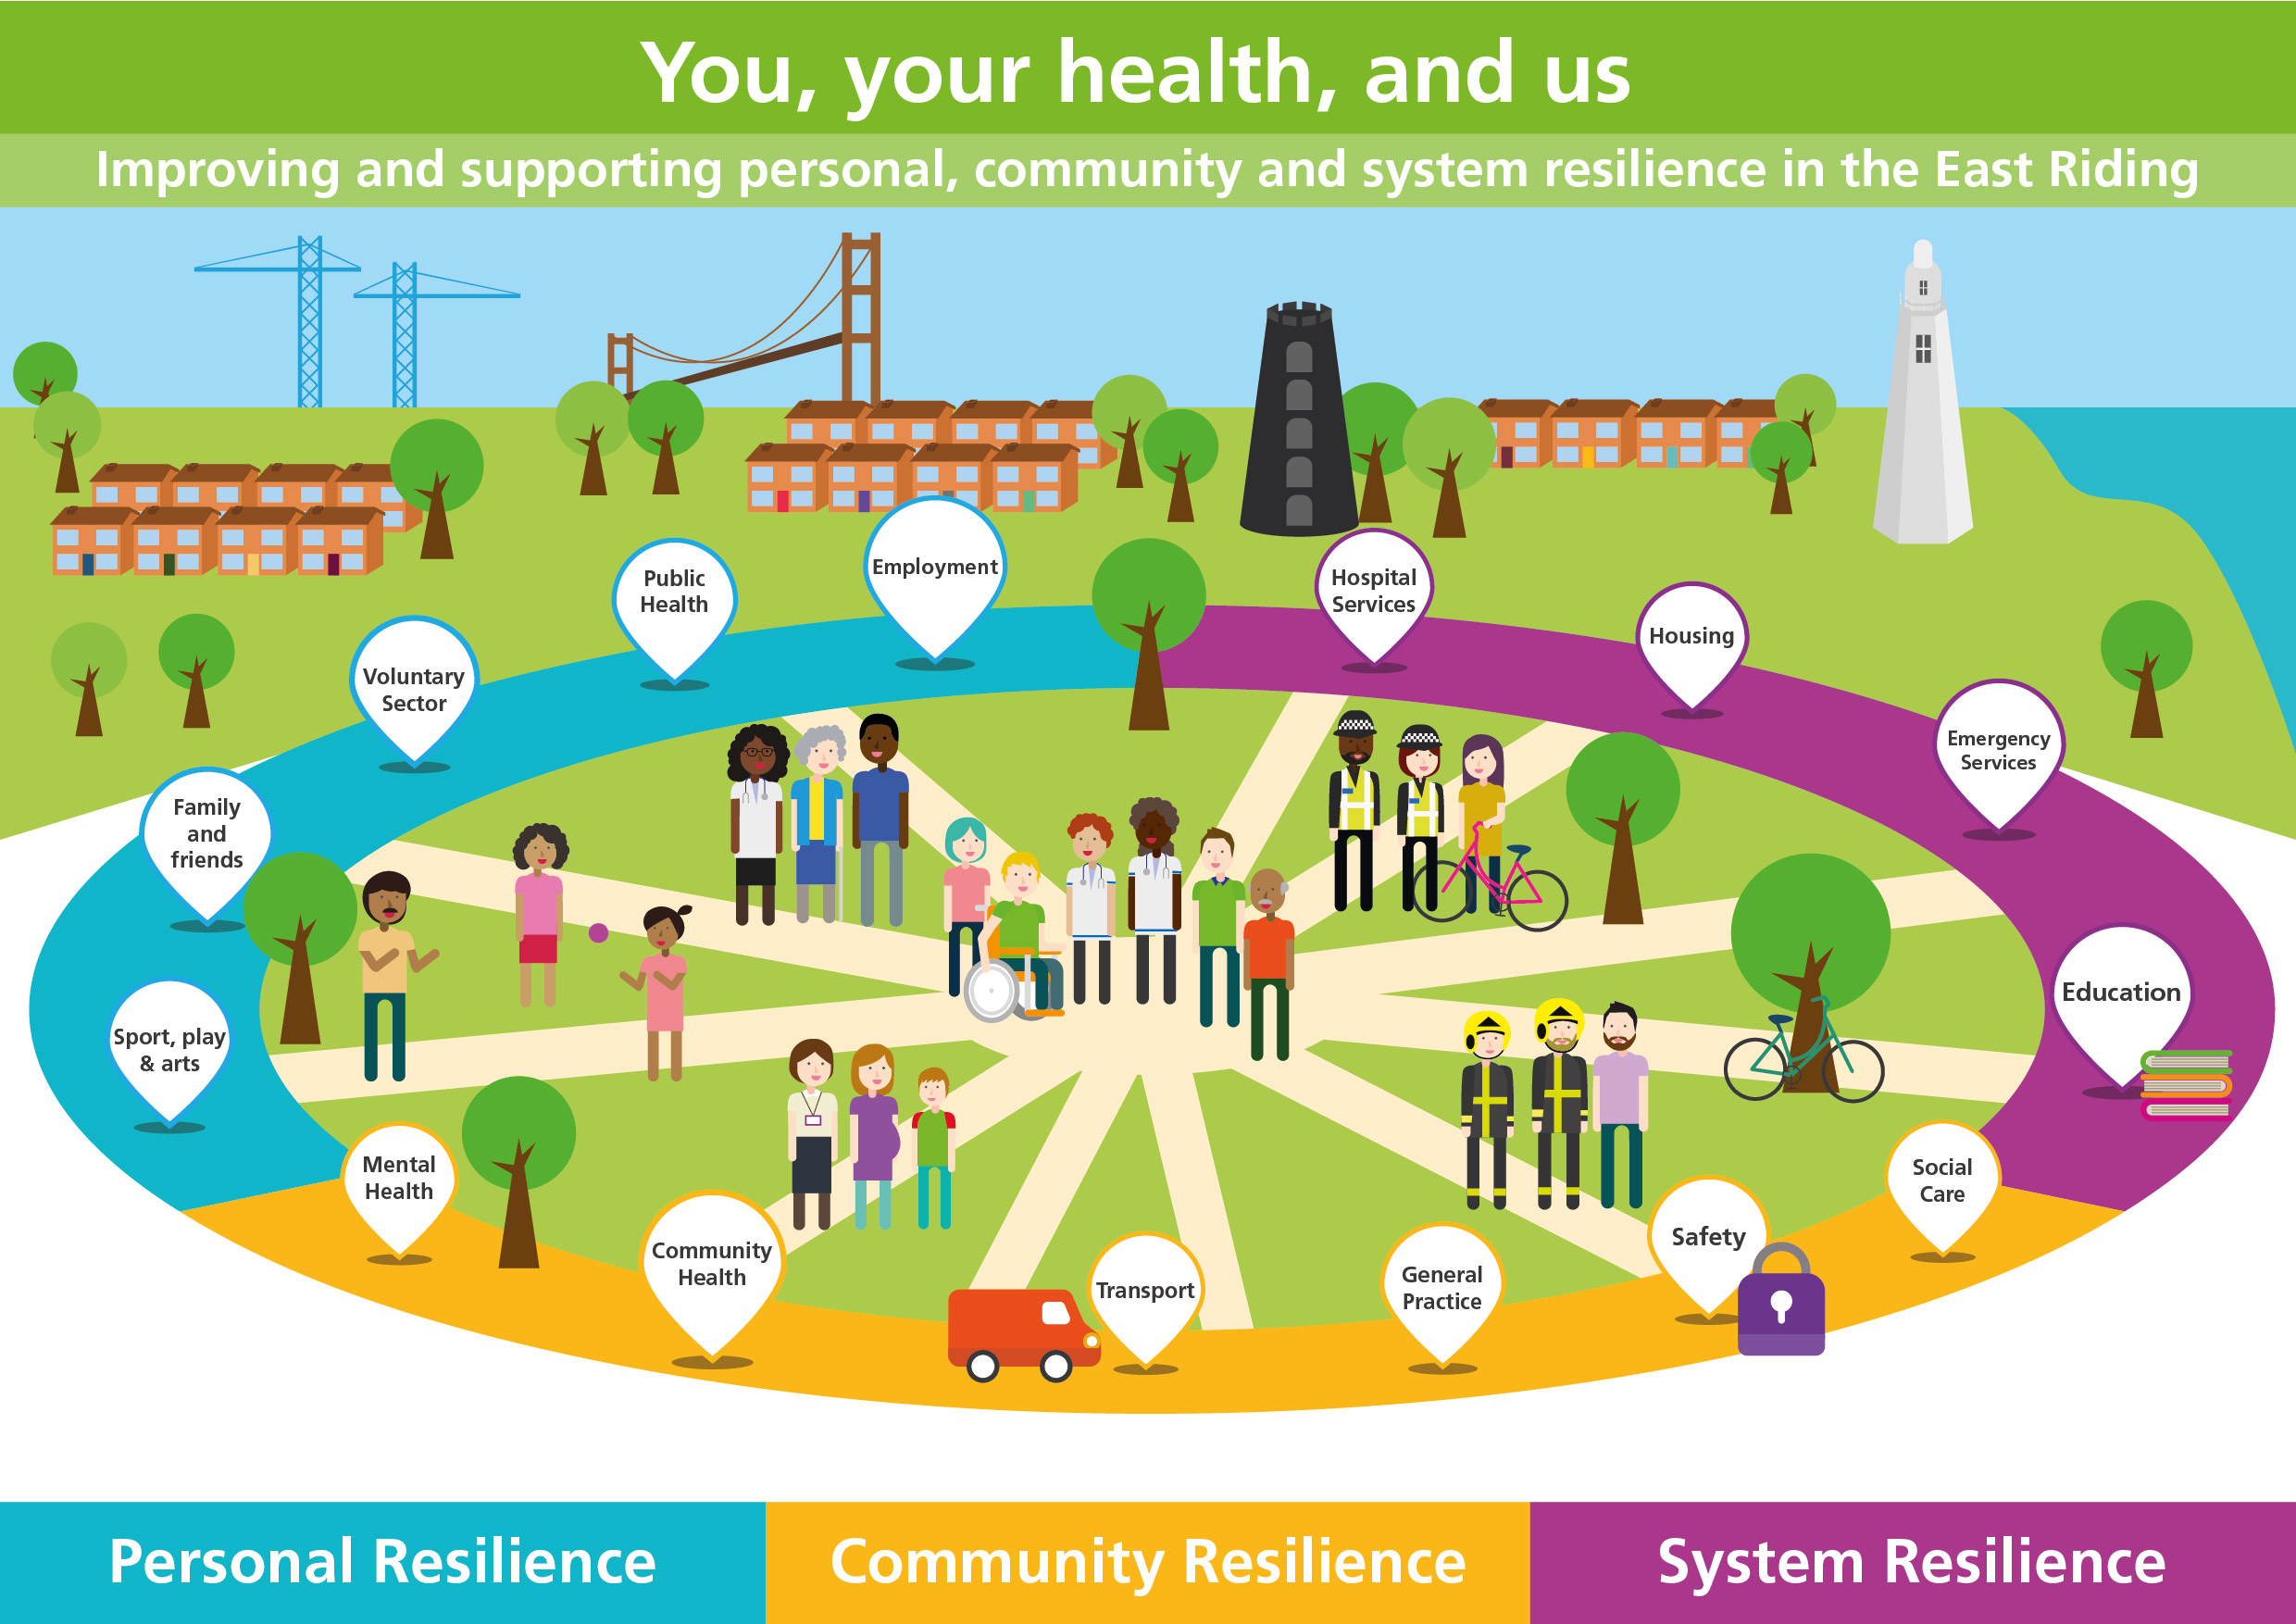 A graphic detailing the whole picture of support in the East Riding like employment, transport, education and social care.